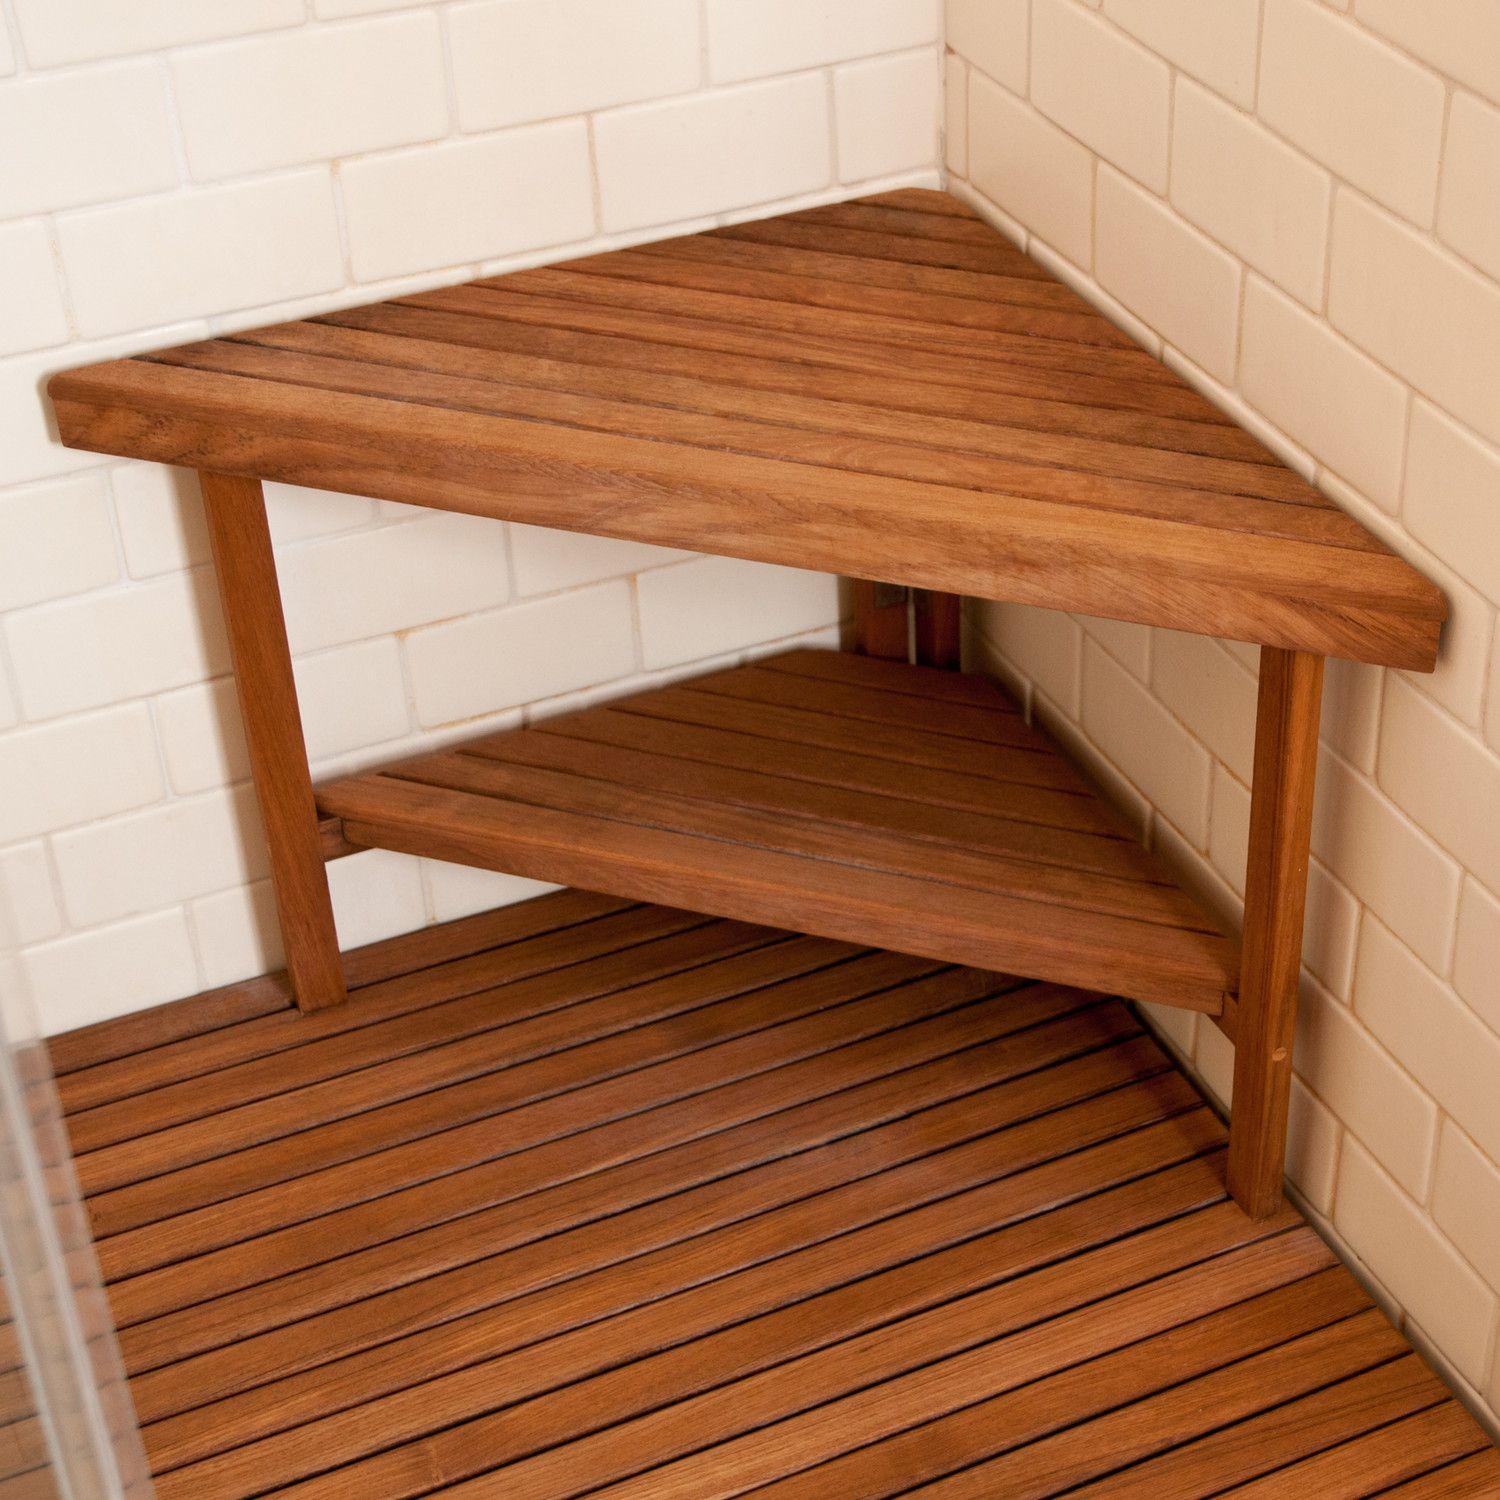 Furniture Teak Shower Bench Teak Shower Bench Corner Teak